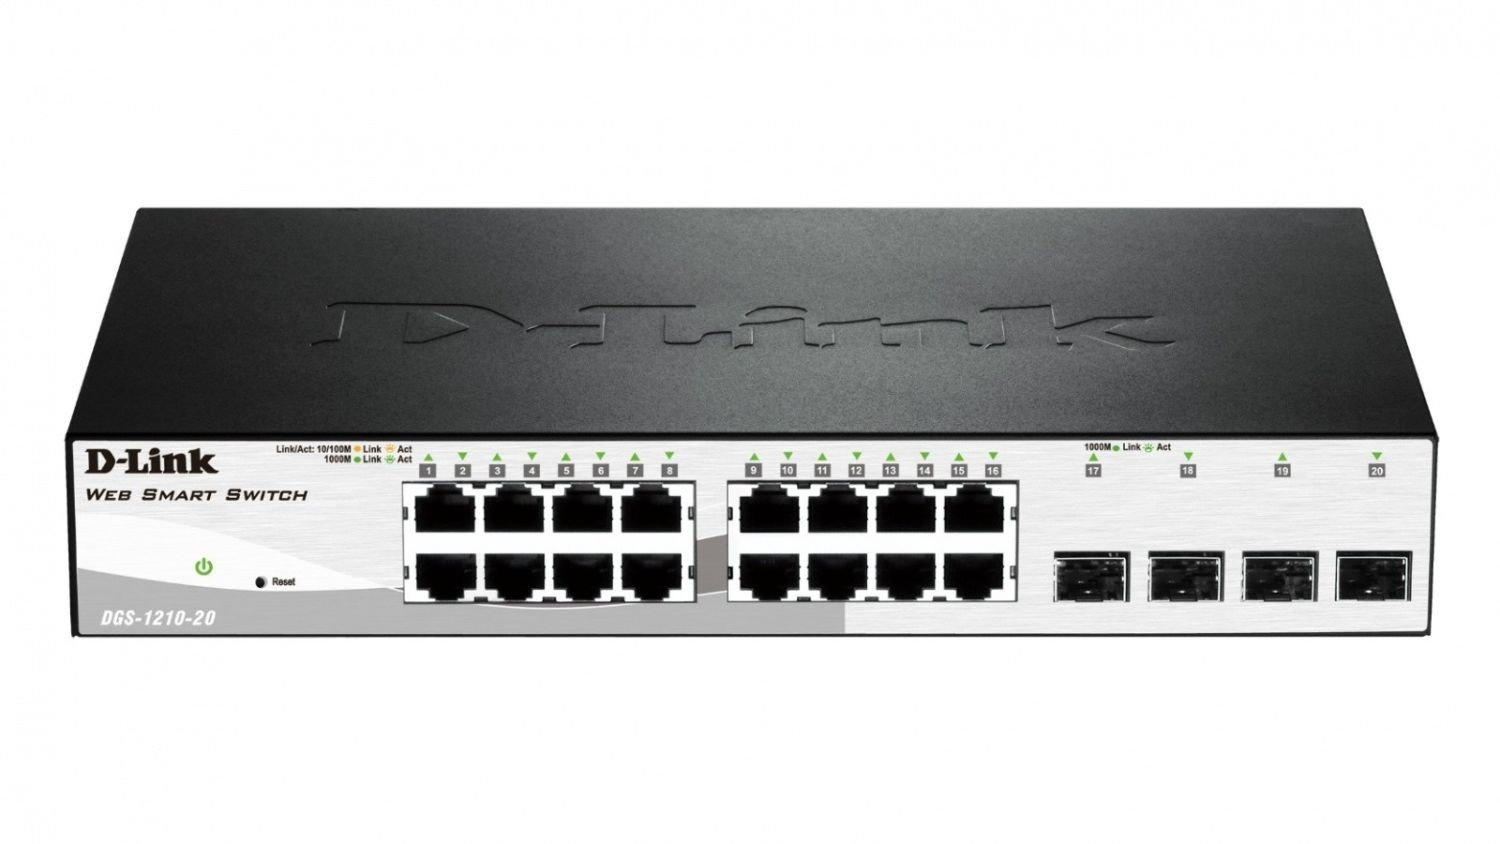 D-Link 16-port 10/100/1000 Base-T with 4 x 1000Base-T /SFP ports